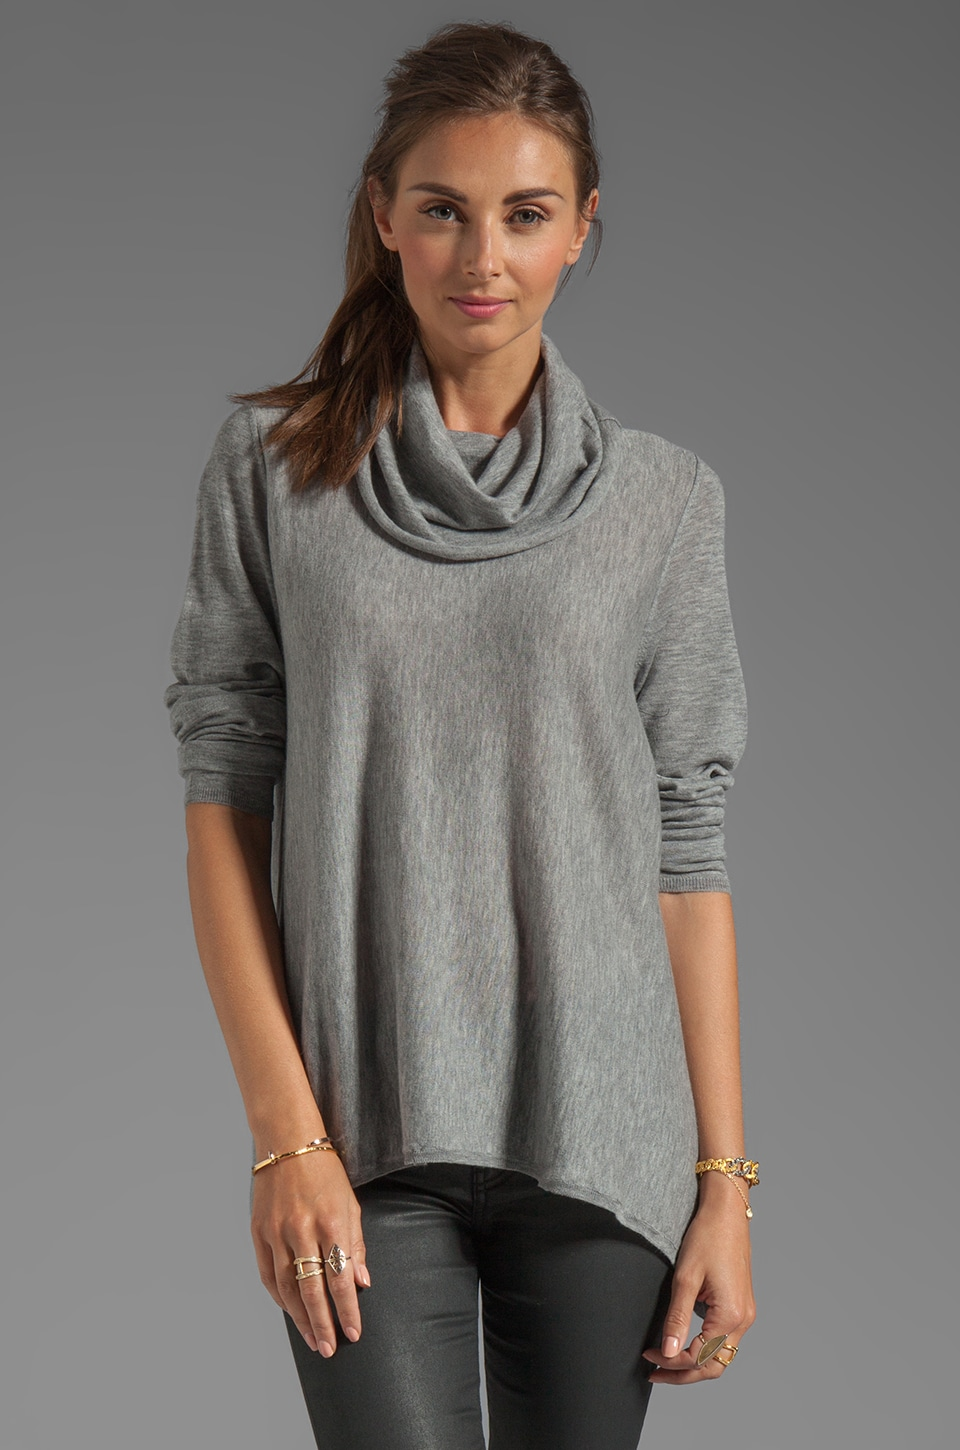 Alice + Olivia Draped Cowl Neck Top in Heather Grey